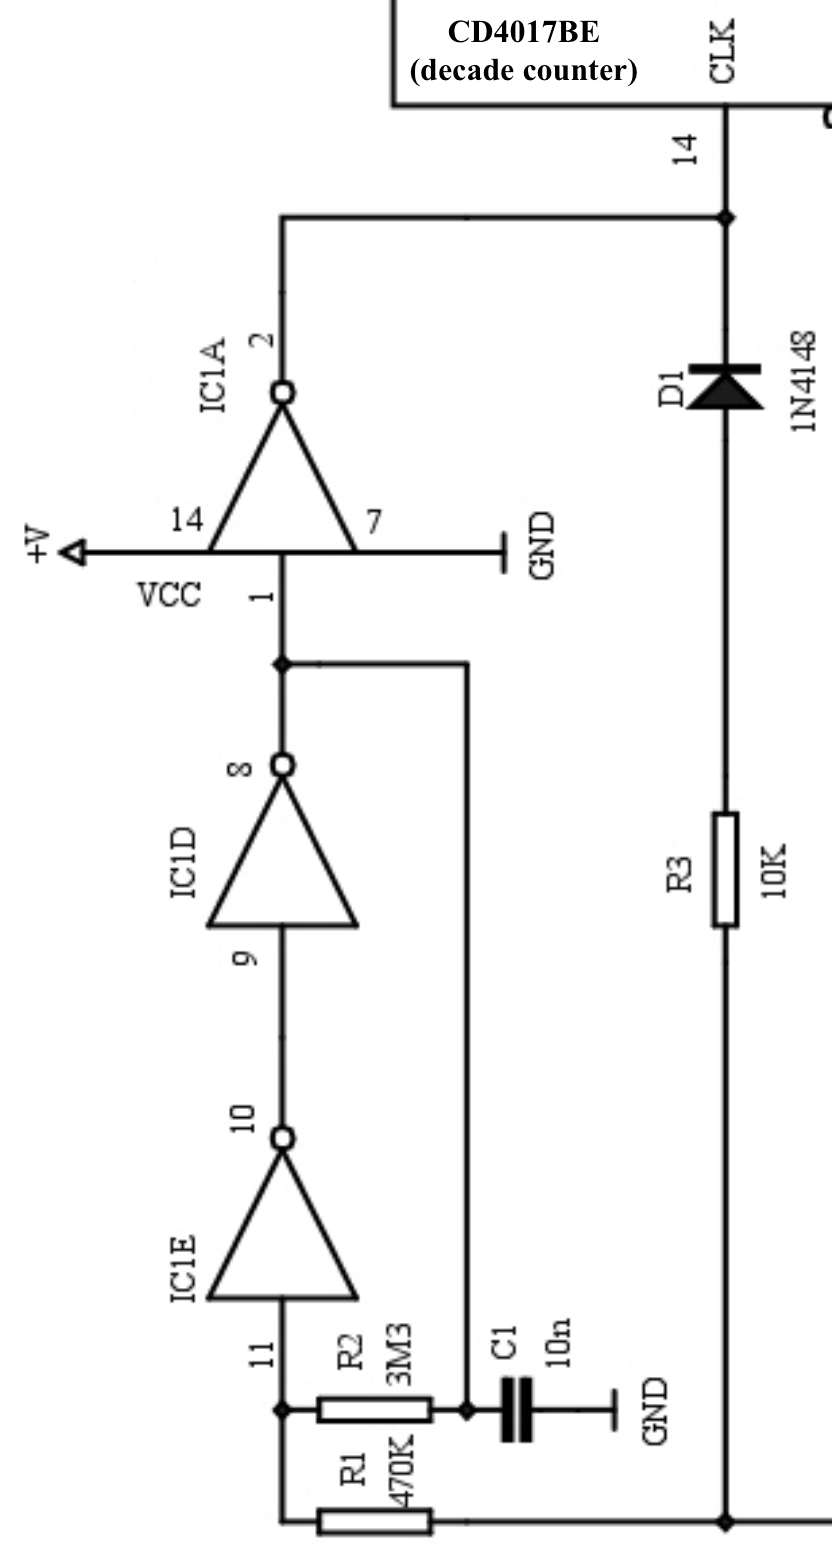 Radiant Ceiling Heat Wiring Schematic Wiring Diagrams